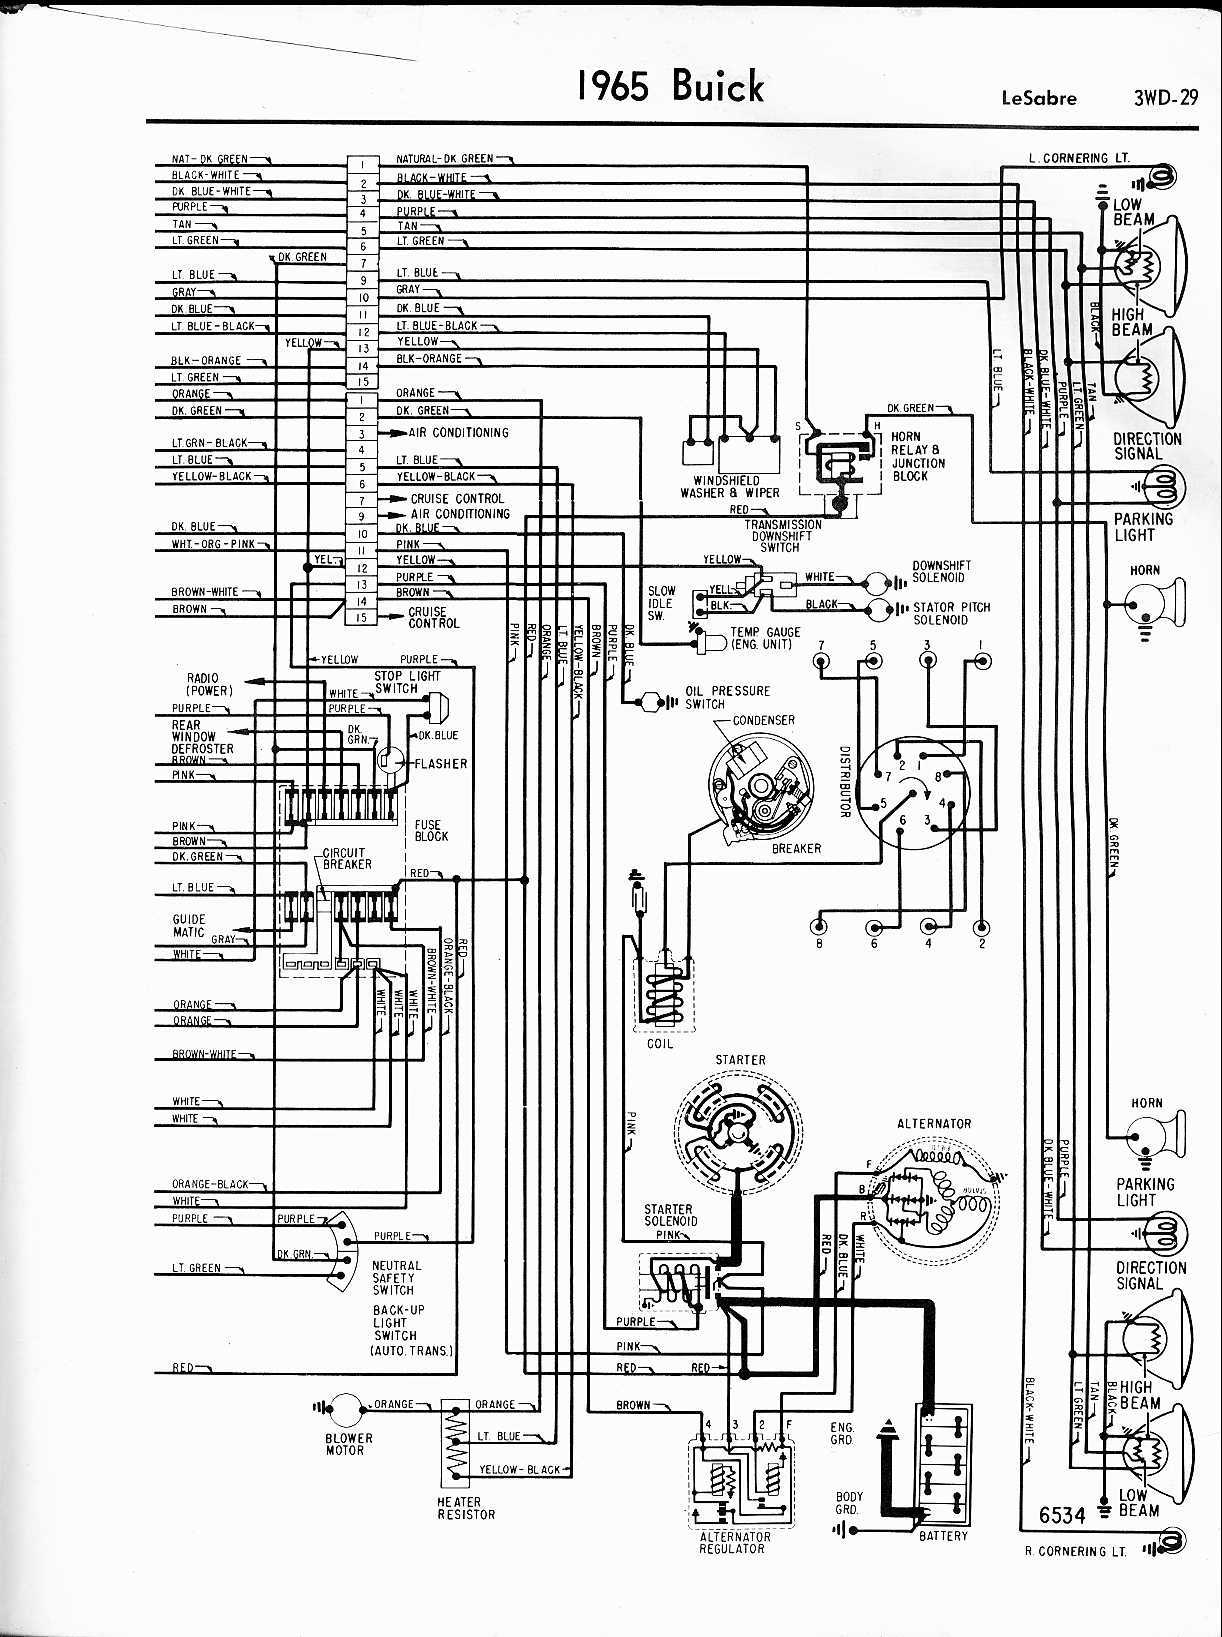 hight resolution of daewoo cielo fuse box diagram wiring library rh 73 codingcommunity de vacuum hose diagram daewoo nubira